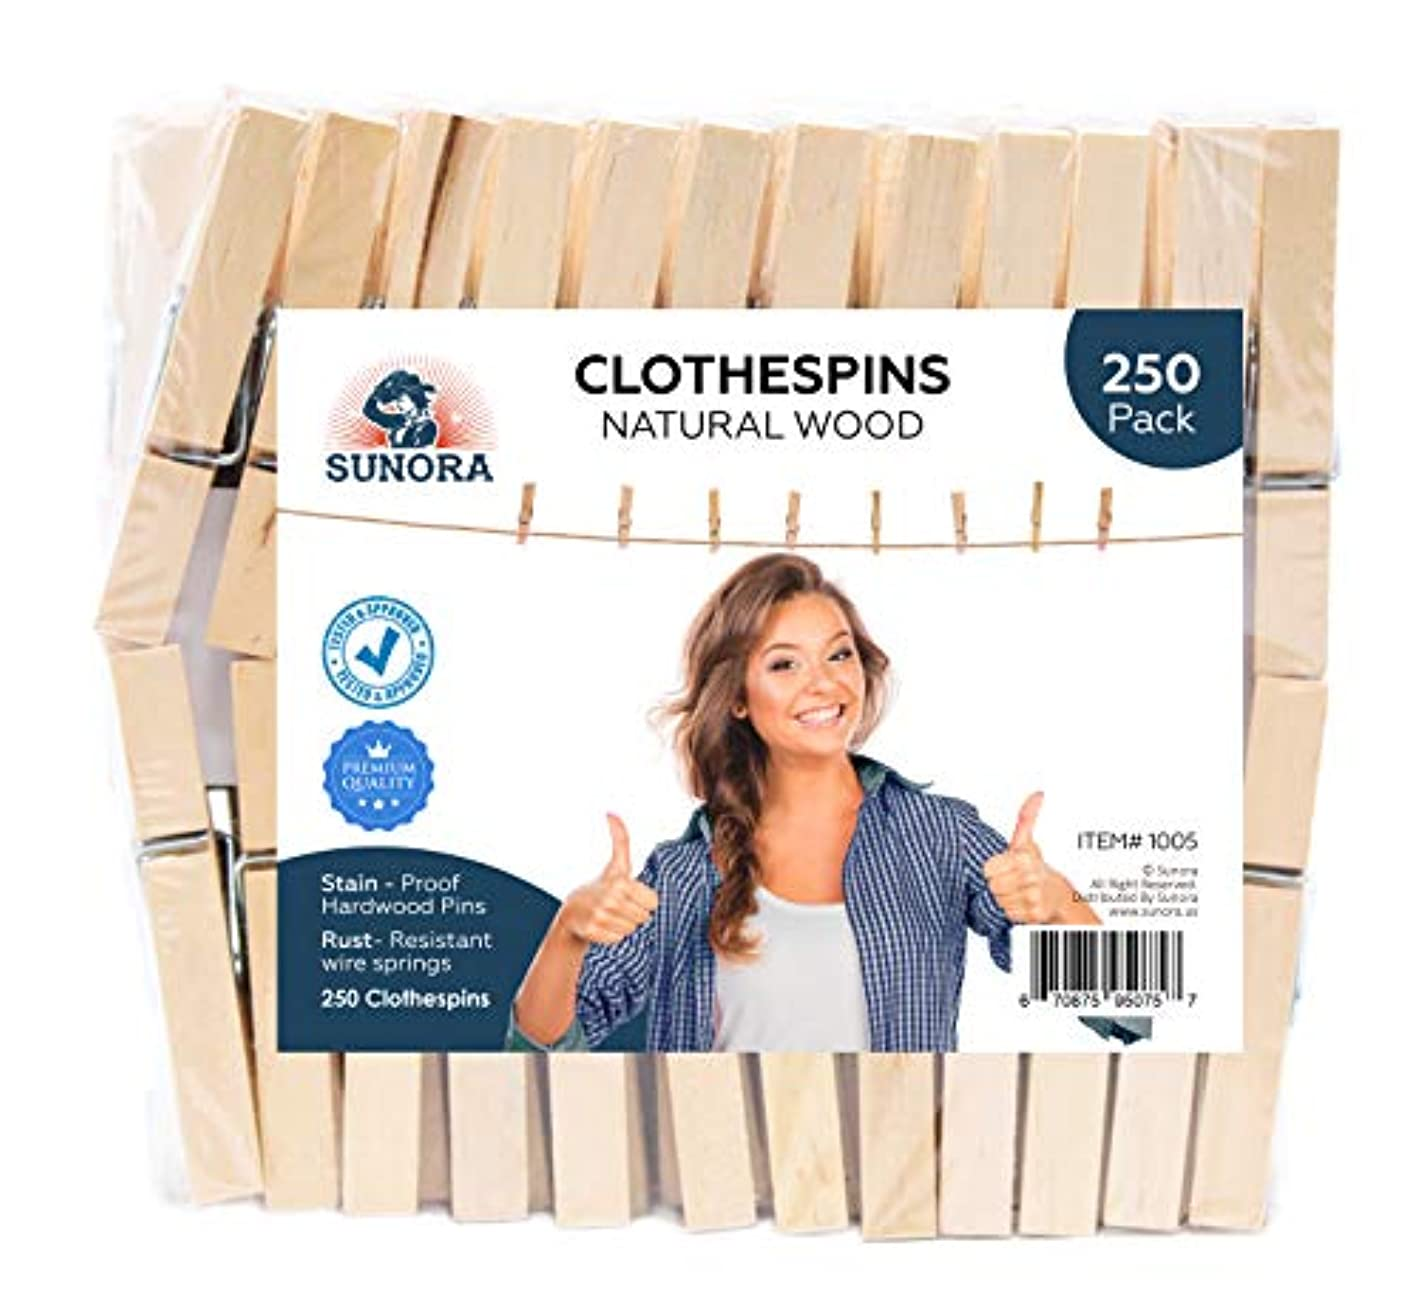 SUNORA Clothespins, Standard Natural Wooden, Stain Proof, 3 inch, 250 Value Pack, for Multipurpose Everyday Laundry, Clothes, Towels, Craft, Photos, Pictures, Decor, Baby Shower, Art Wall